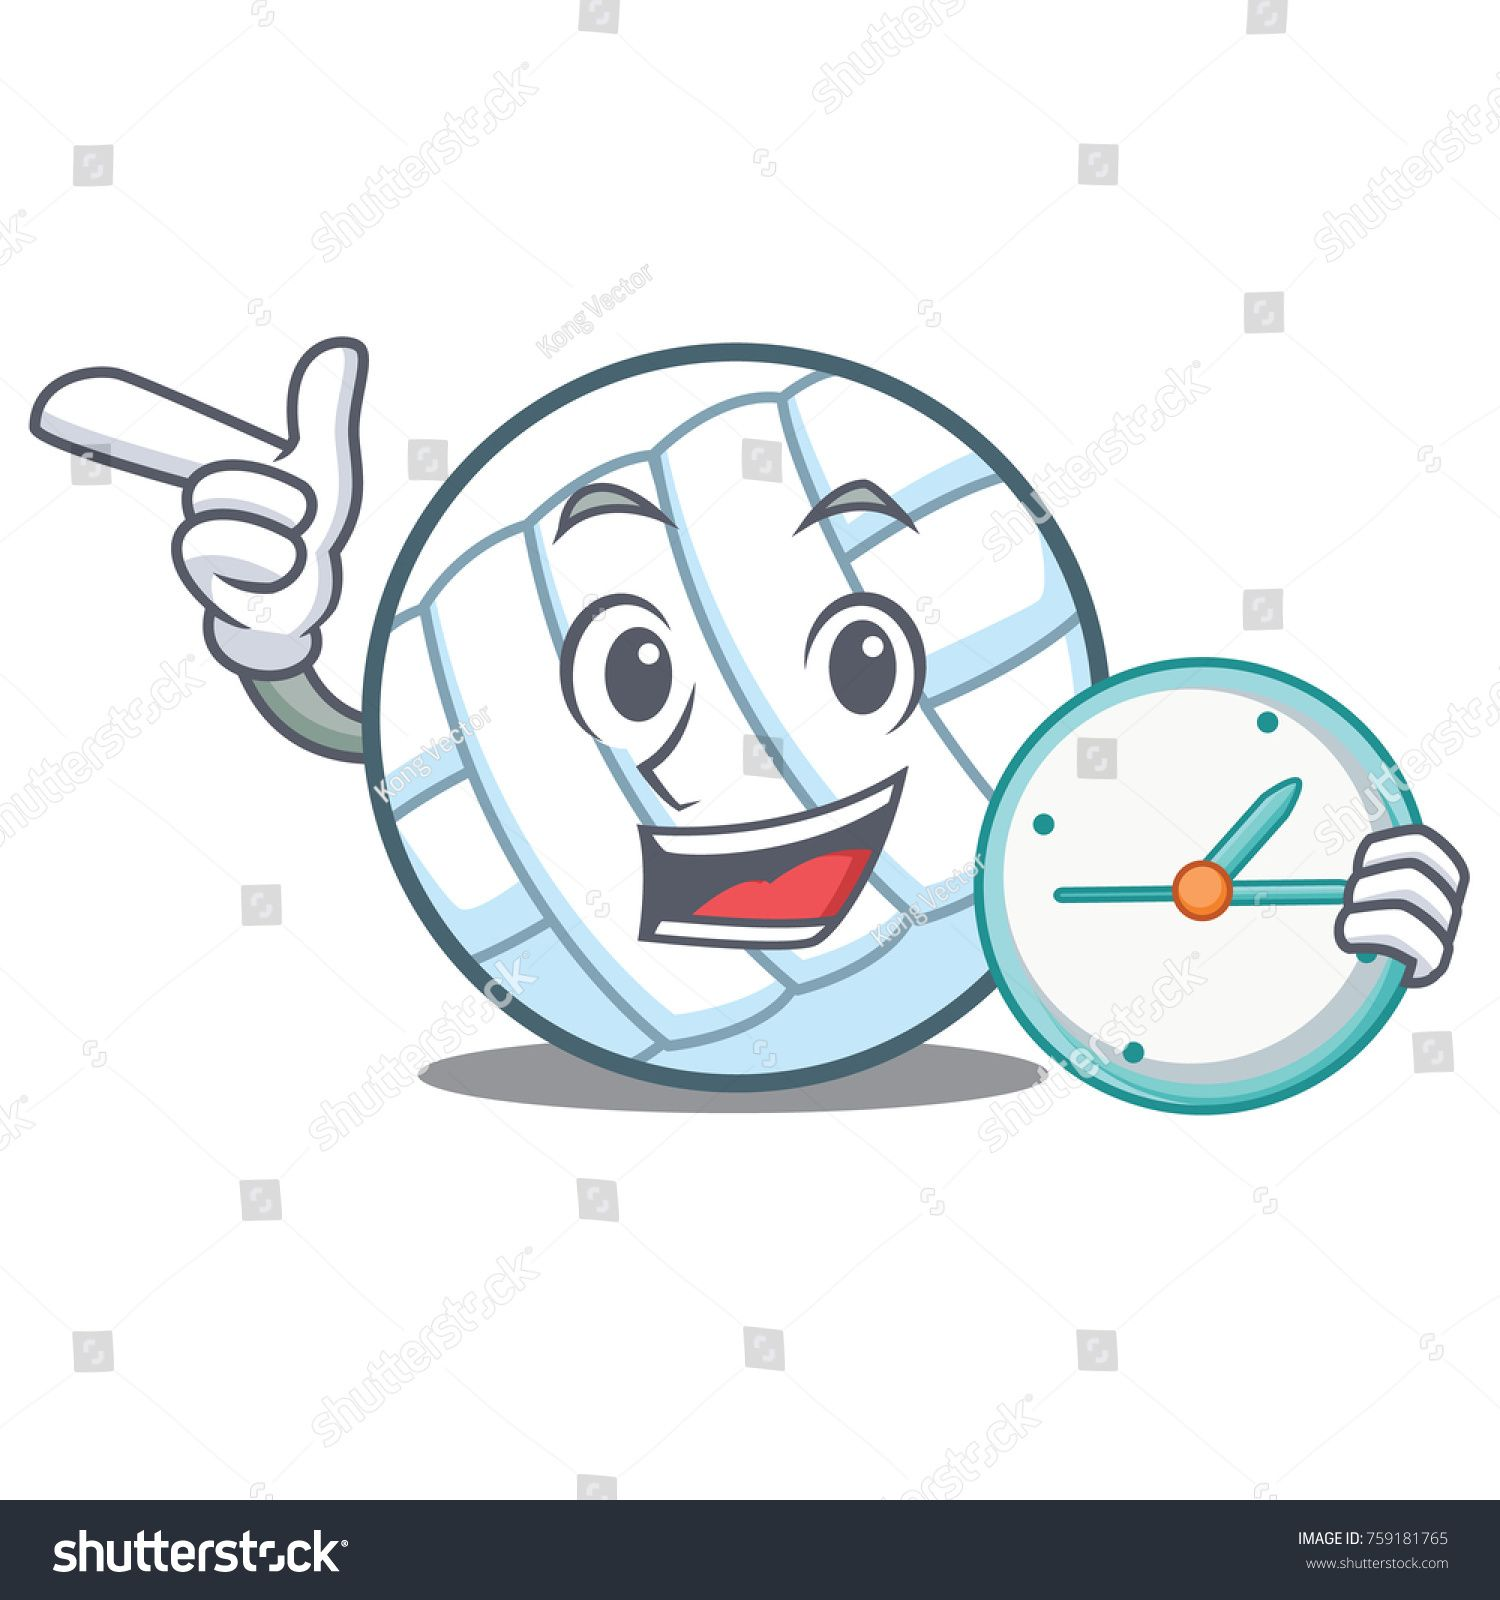 With Clock Volley Ball Character Cartoon Ad Ad Volley Clock Ball Cartoon In 2020 Character Cartoon Mockup Design